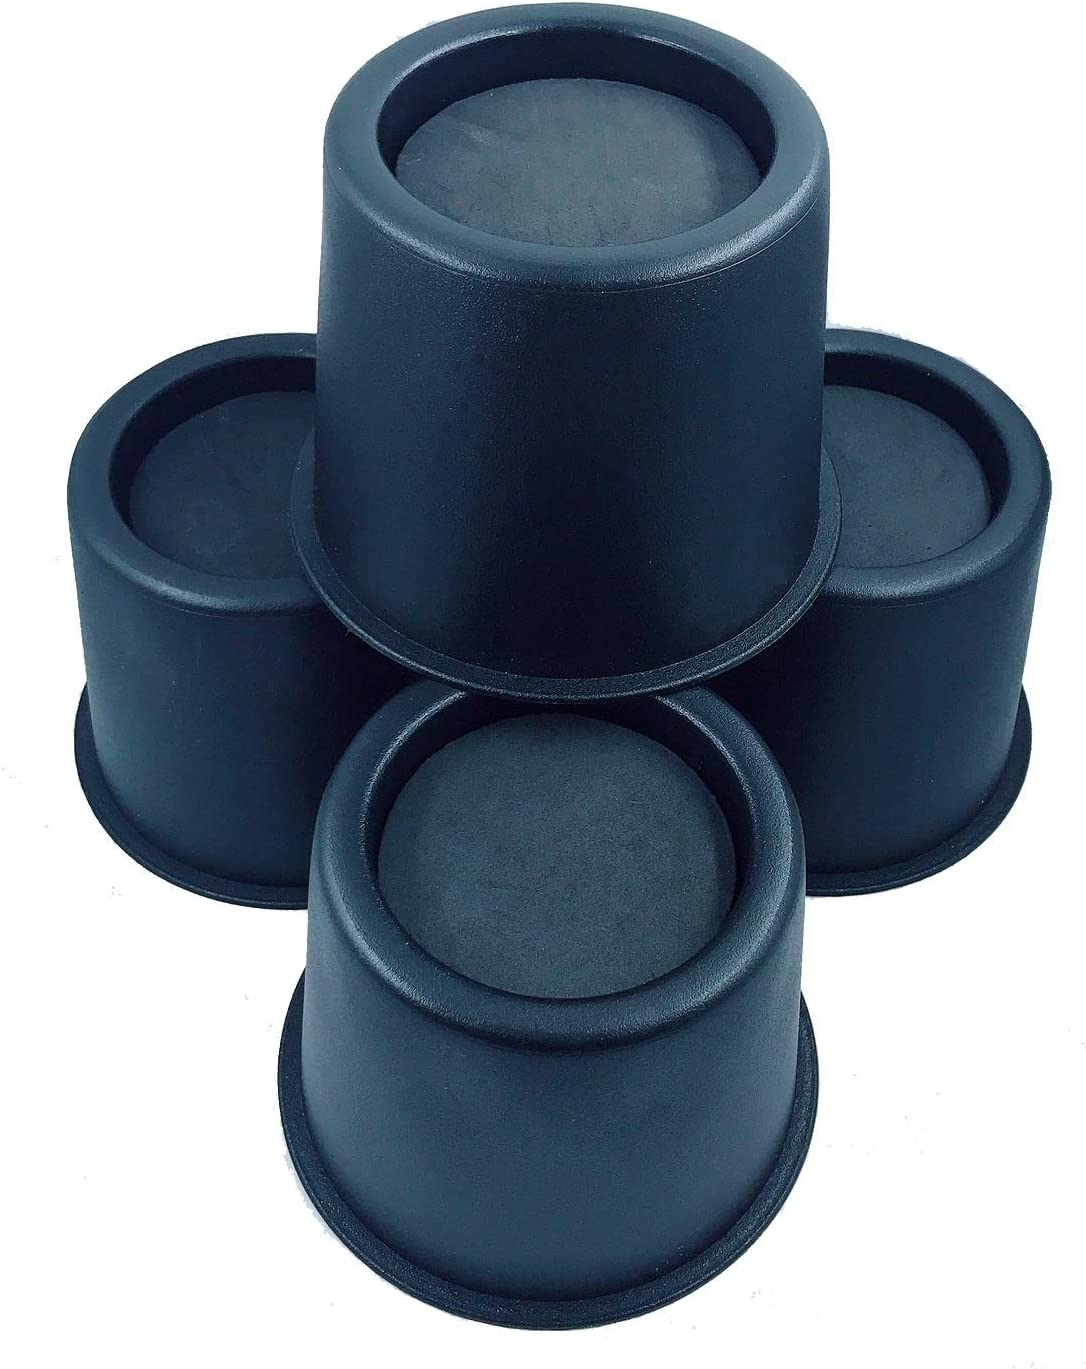 BTSD-home Round Circular Bed Risers Table Risers Furniture Risers Lifts Height of 3 inch Heavy Duty Set of 4 Pieces (Black)